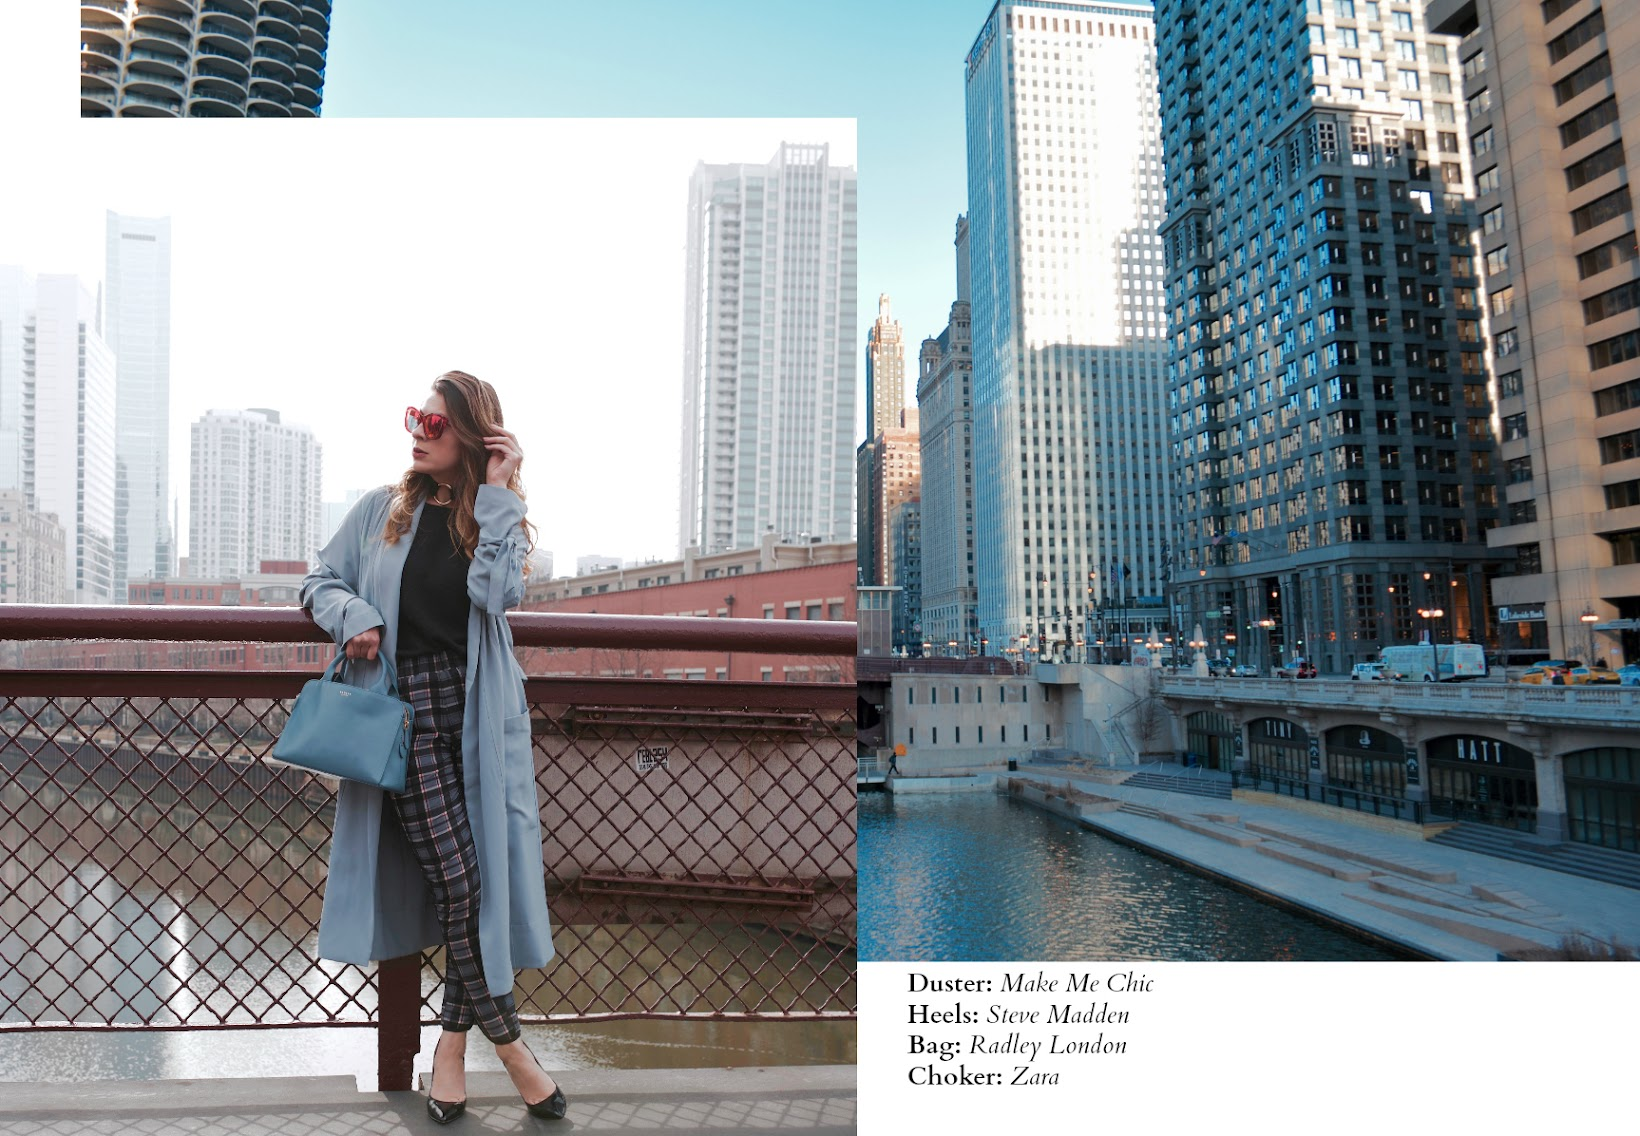 MEDIUM ZIPTOP SATCHEL, Millbank satchel from Radley London, Chicago riverwalk, Chicago fashion blogger, Fashionlingual, Desirée Velásquez, Latina fashion blogger, Chicago style blogger, Chicago blogger, bloguera de moda, River North Chicago,